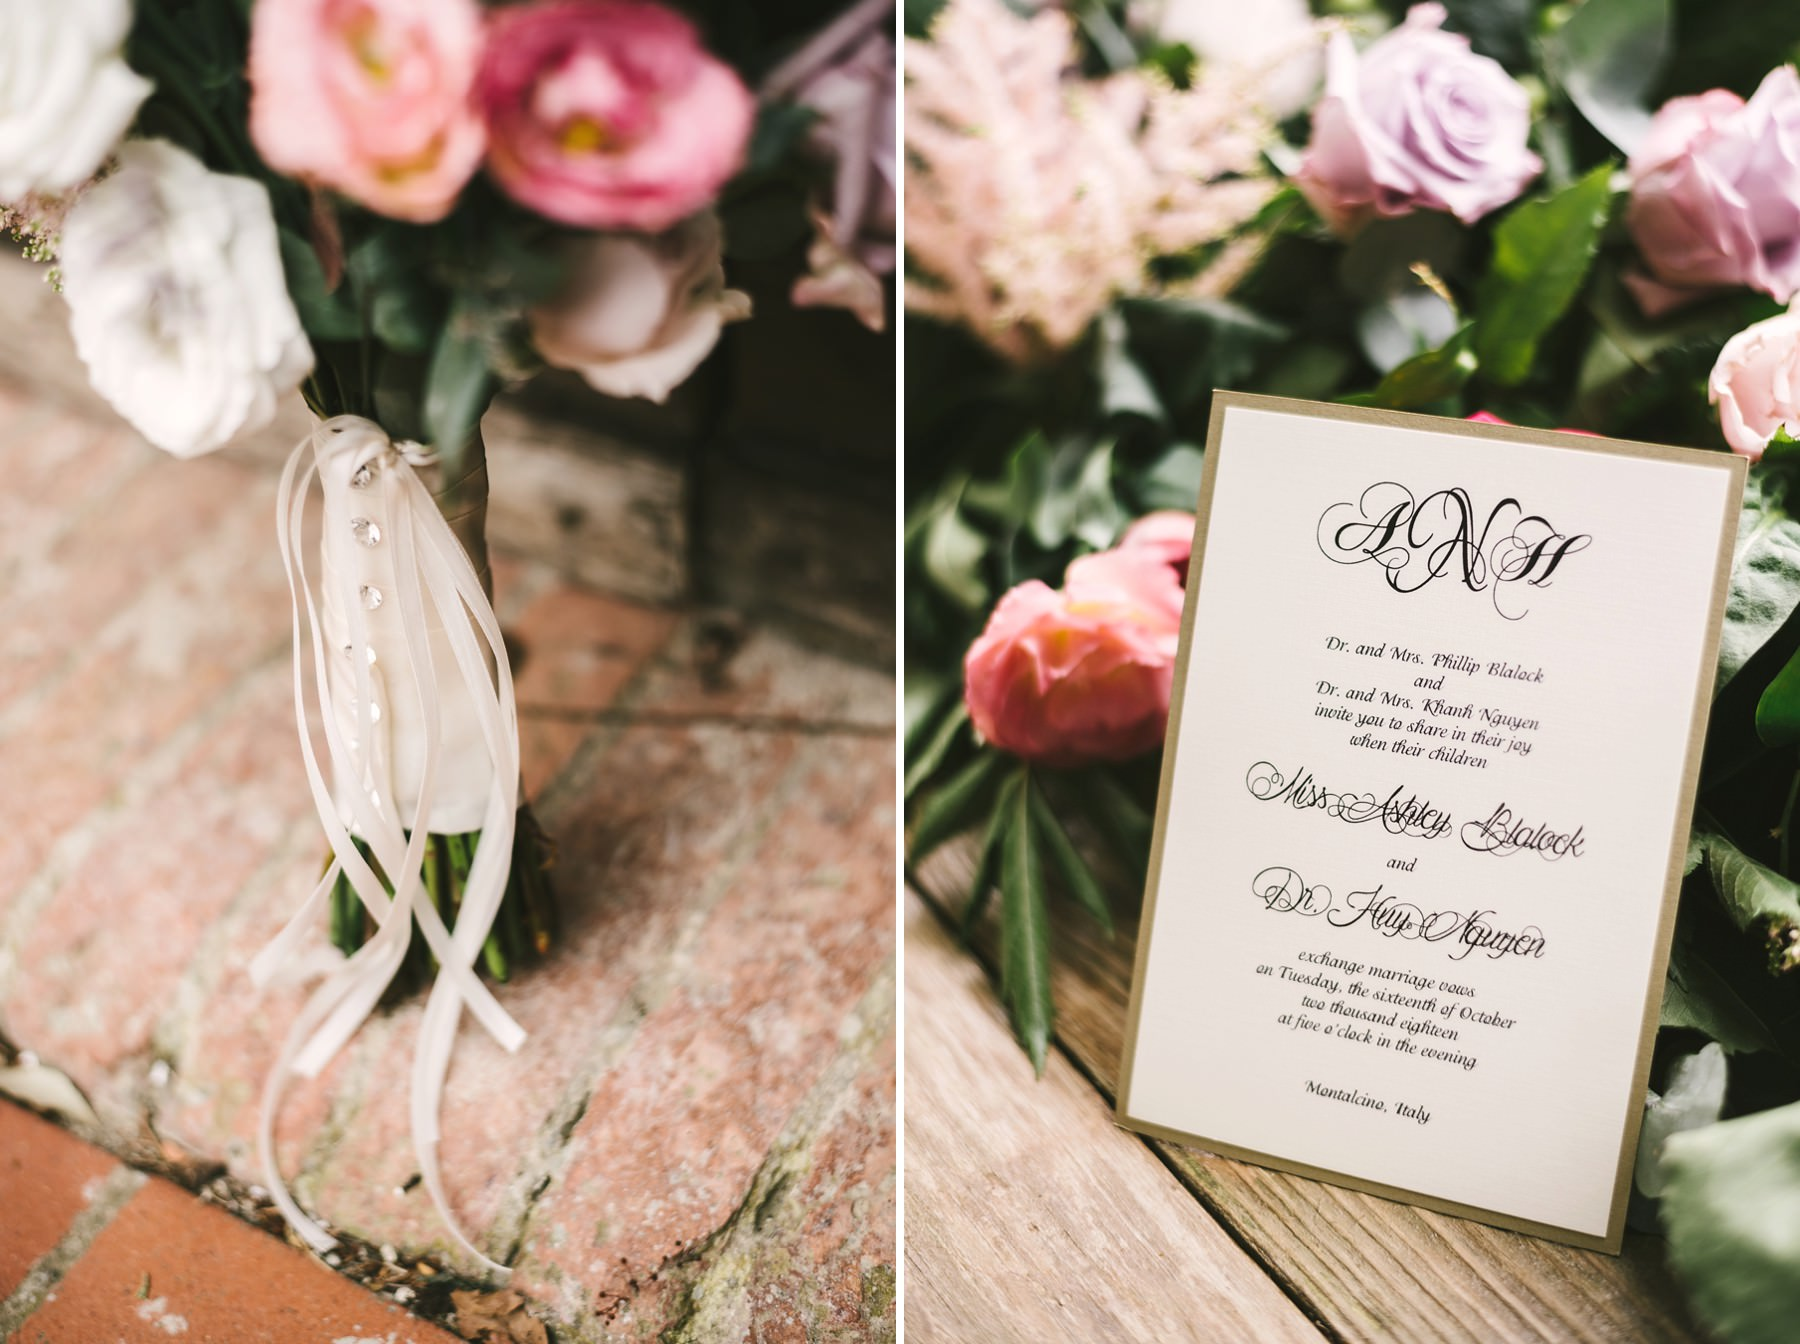 Elegant invitation stationery decor for intimate destination wedding in Val D'Orcia